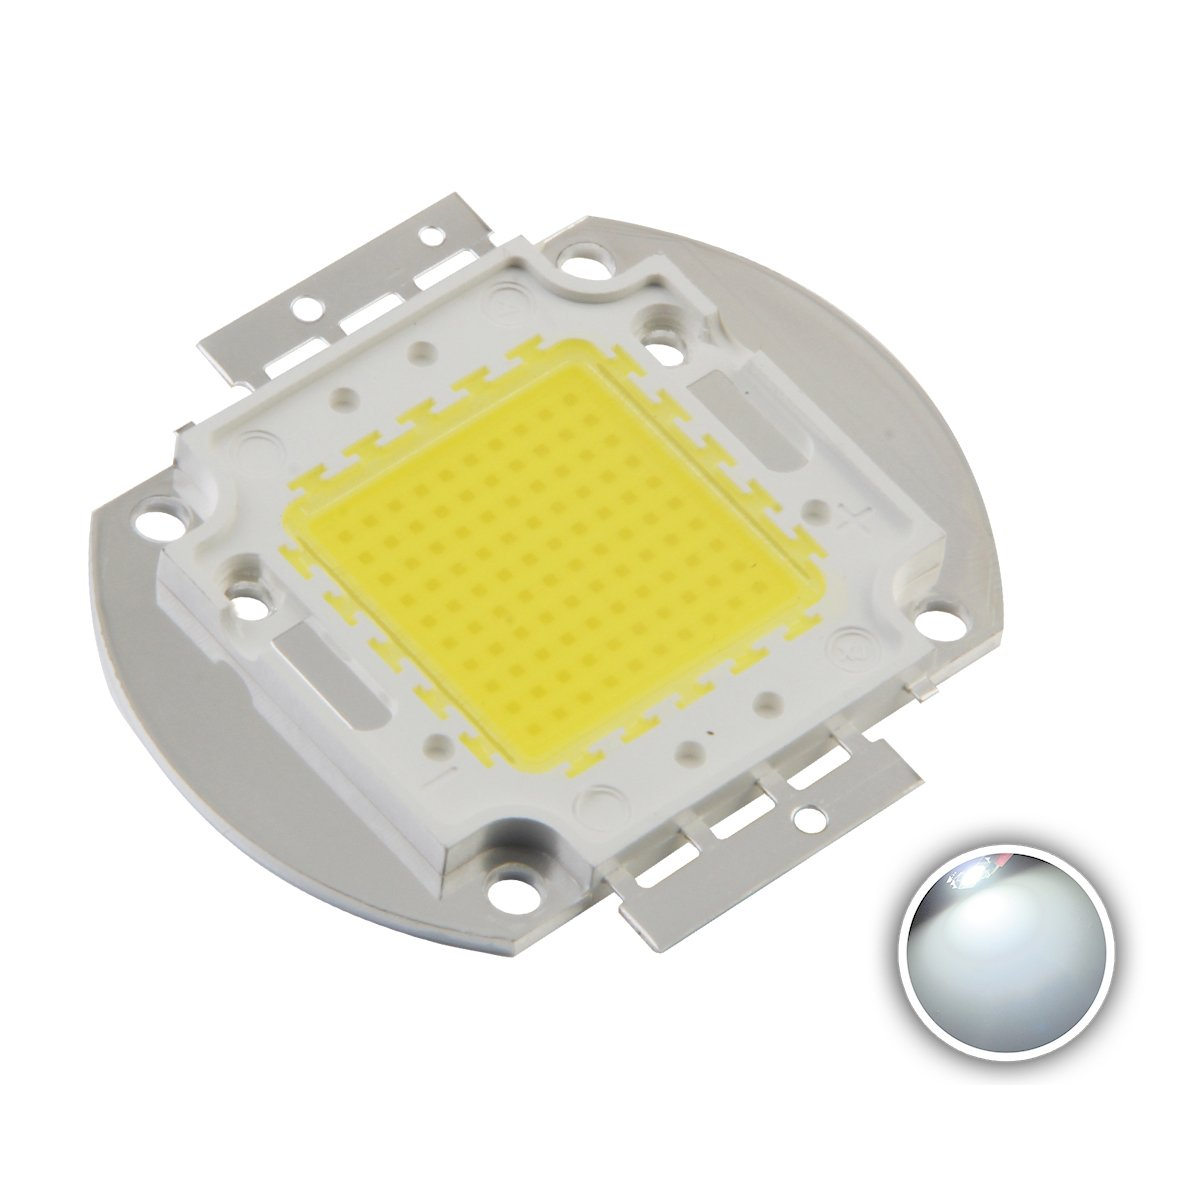 Chanzon High Power Led Chip 100W White 6000K-6500K 3000mA DC 30V-34V 100 Watt Super Bright Intensity SMD COB Light Emitter Components Diode 100 W Bulb Lamp Beads DIY Lighting